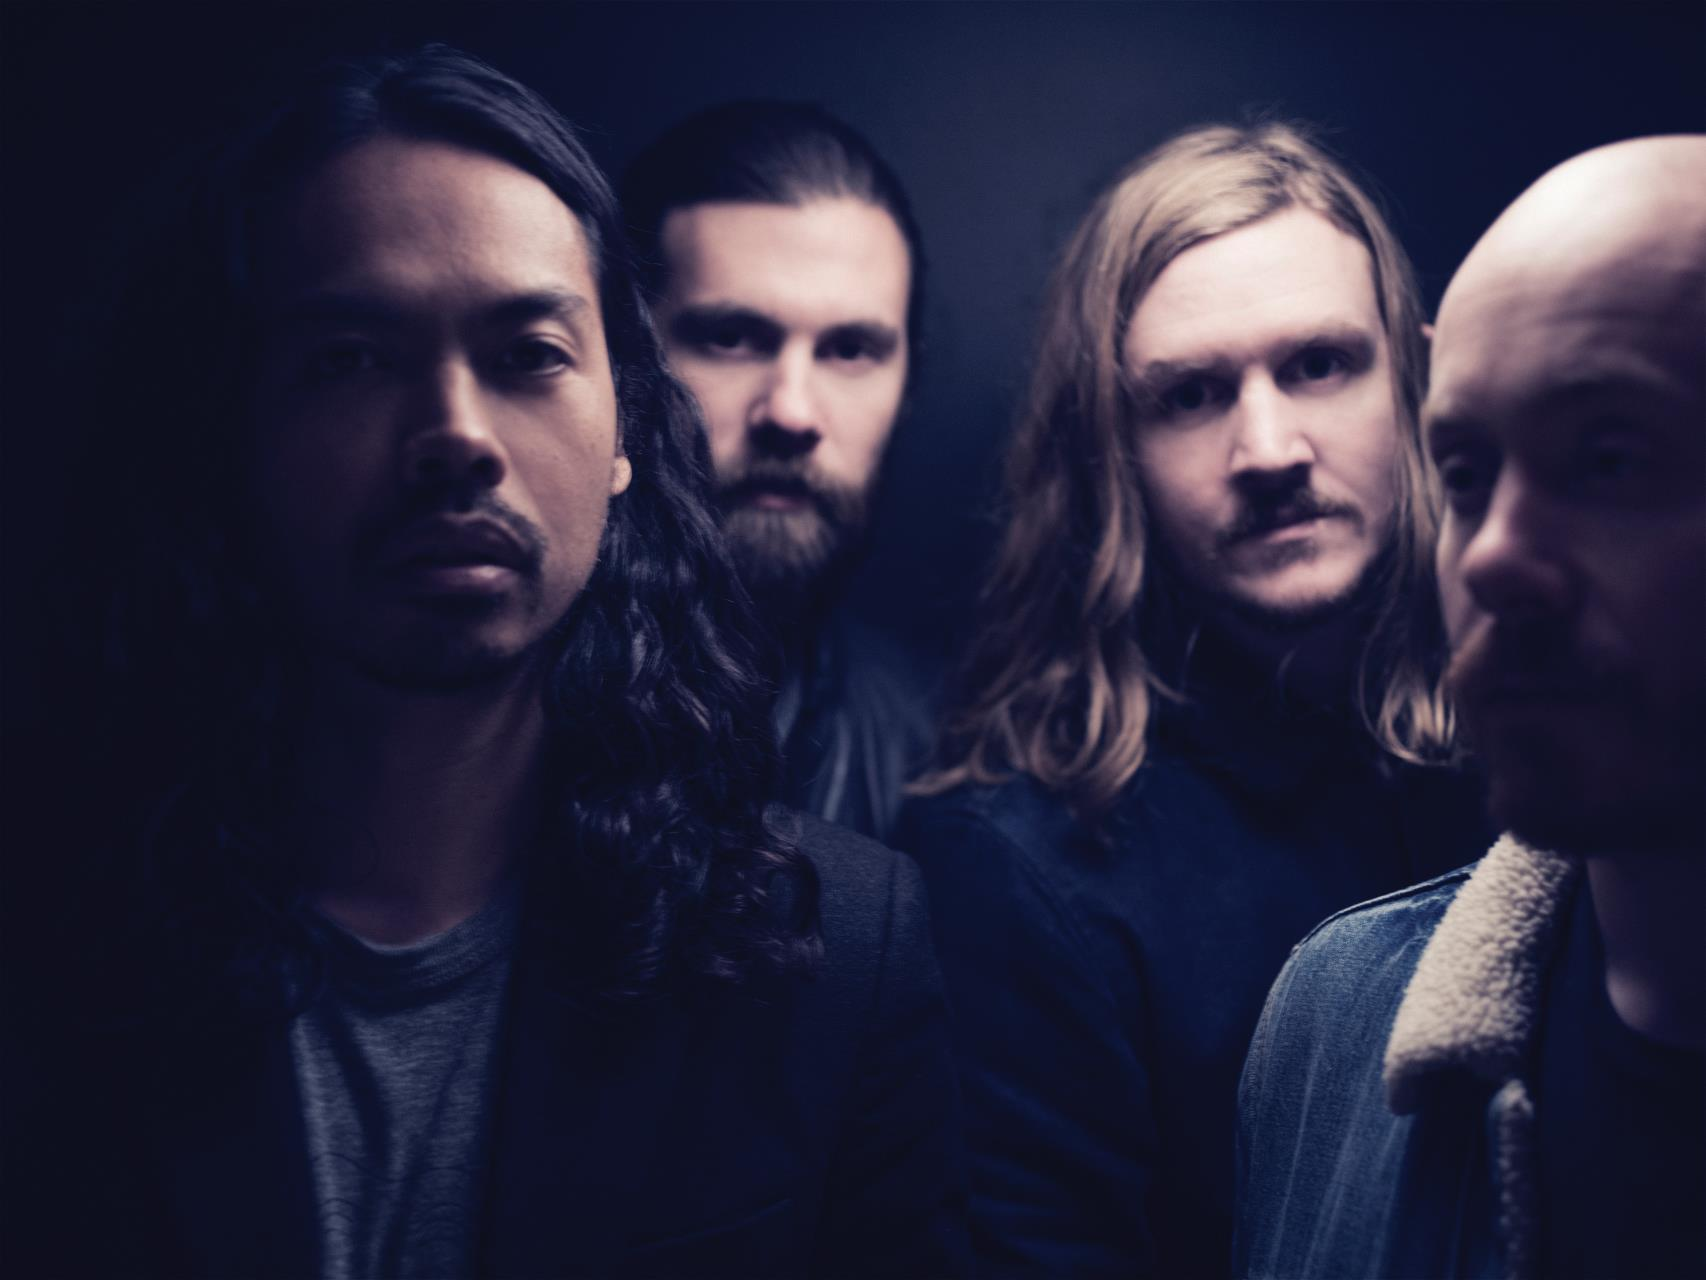 The Temper Trap announced as WoW headline act